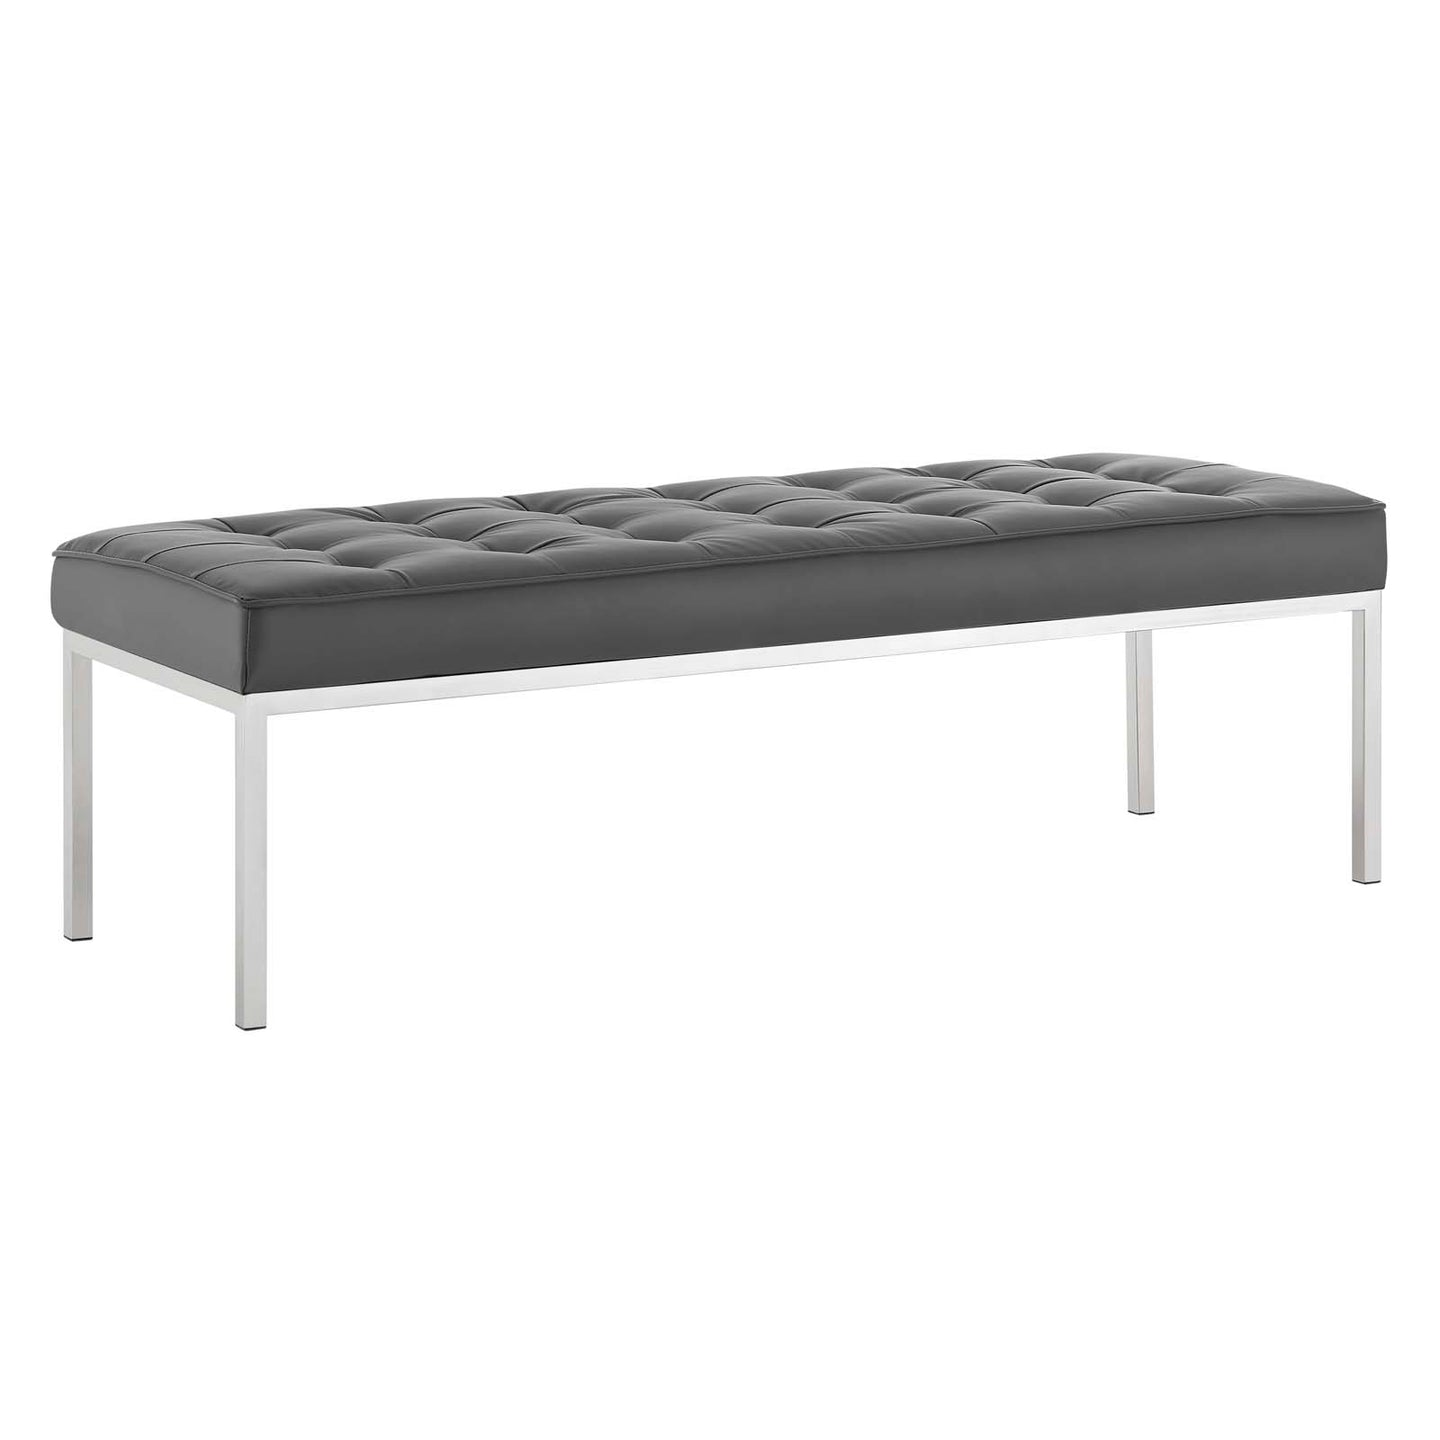 Modway Furniture Modern Loft Tufted Button Large Upholstered Faux Leather Bench - EEI-3397